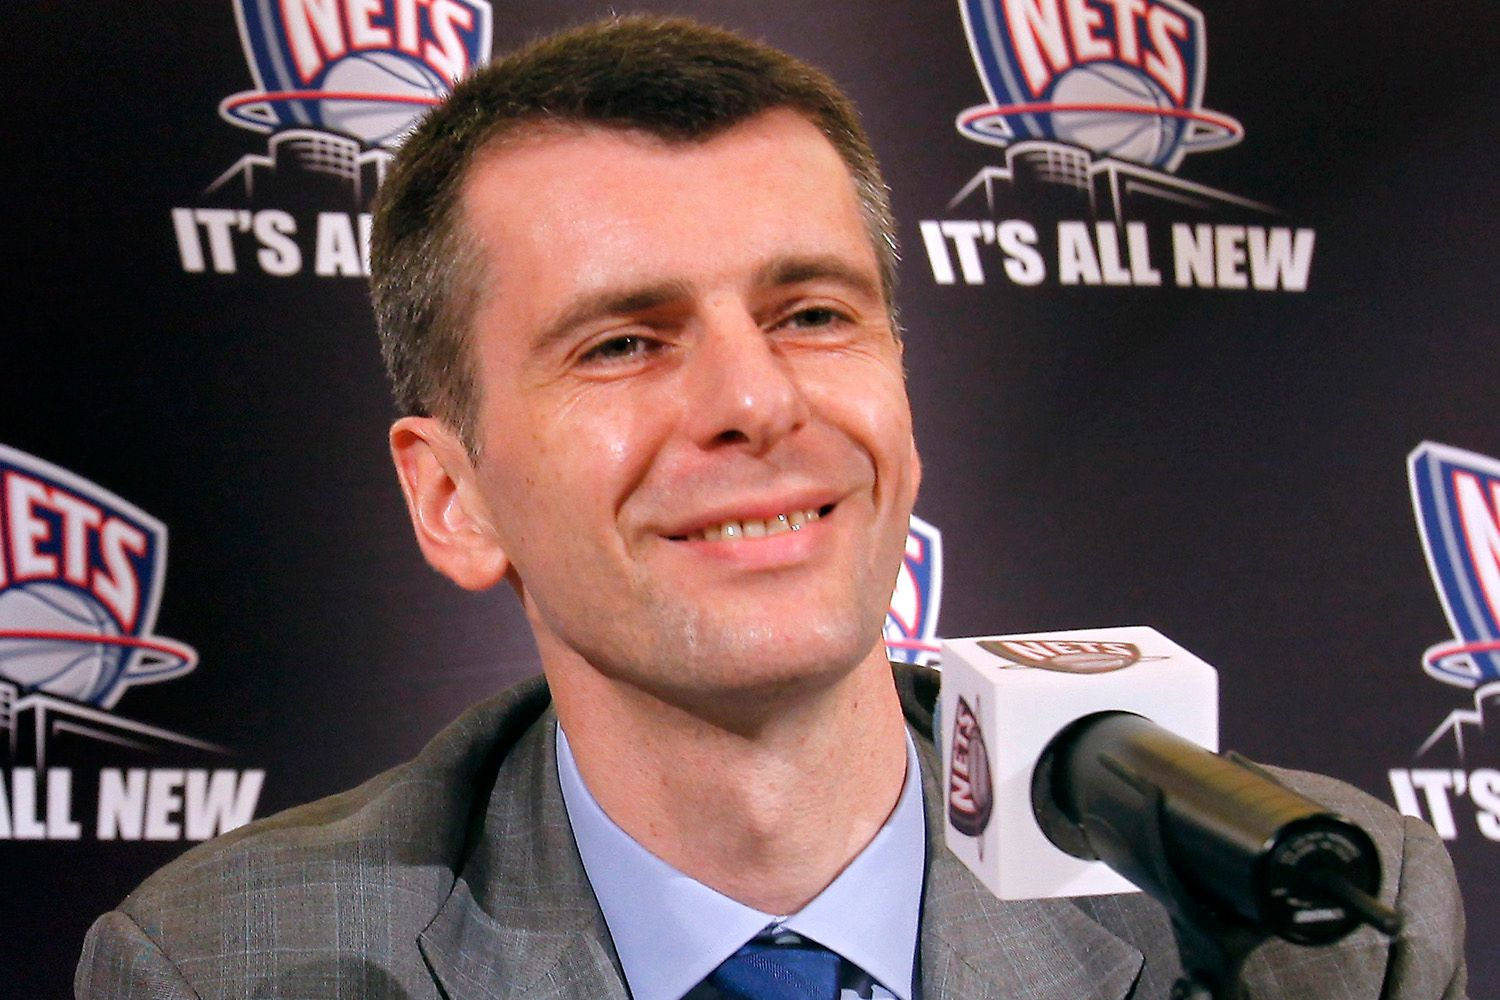 New Jersey Nets owner, Russian billionaire Mikhail Prokhorov, is introduced to the press during a news conference in New York